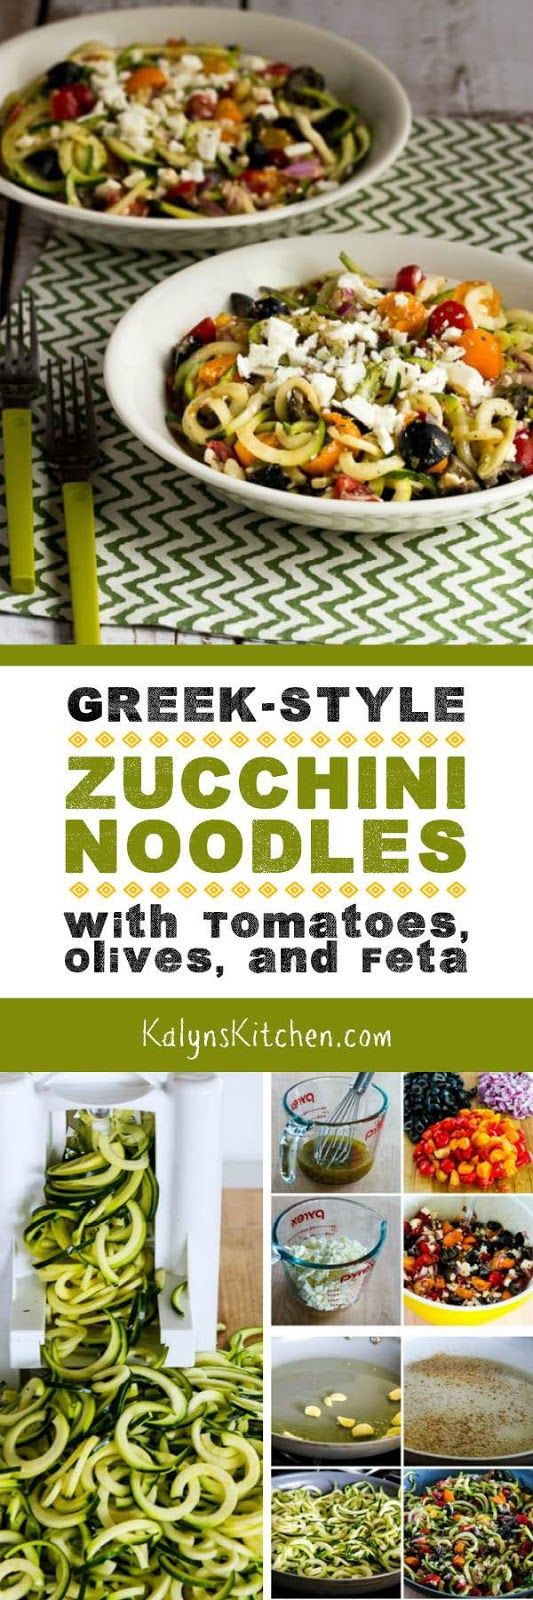 Zucchini noodles, Zucchini and Feta on Pinterest